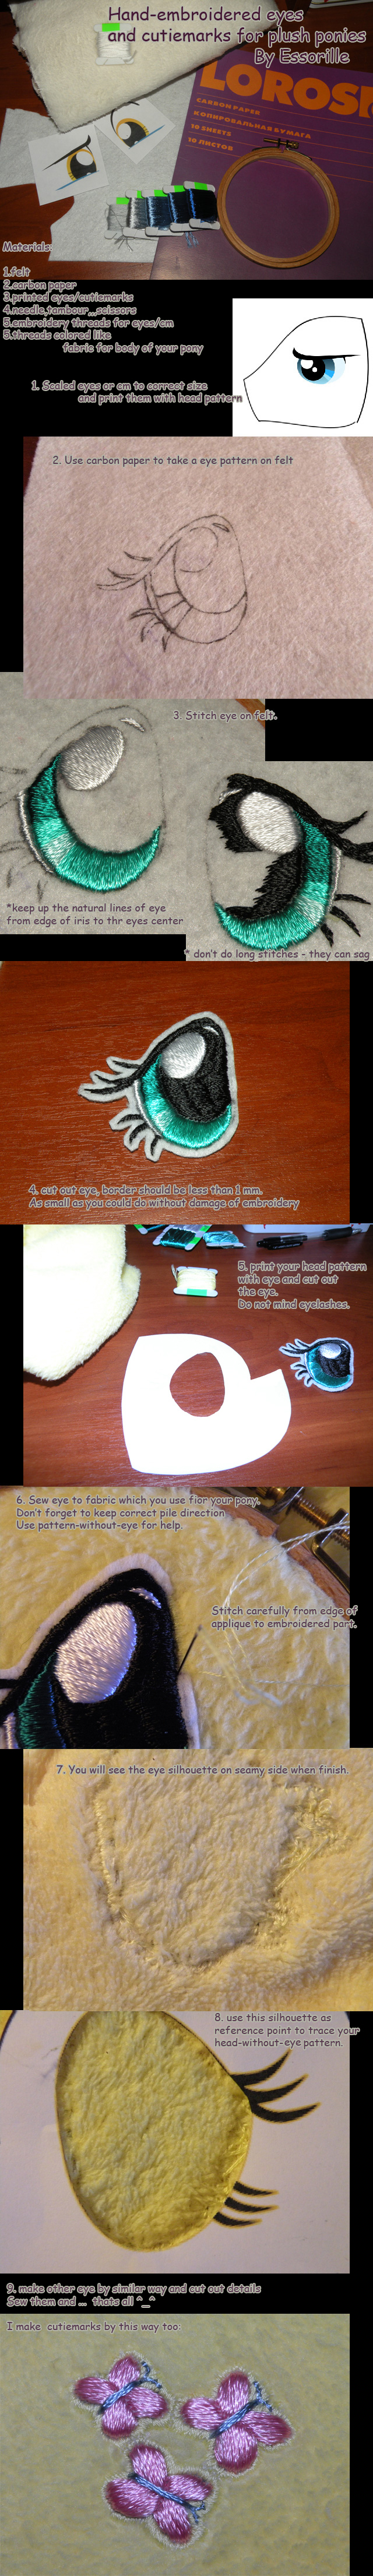 hand-embroidered plush eyes tutorial by Essorille